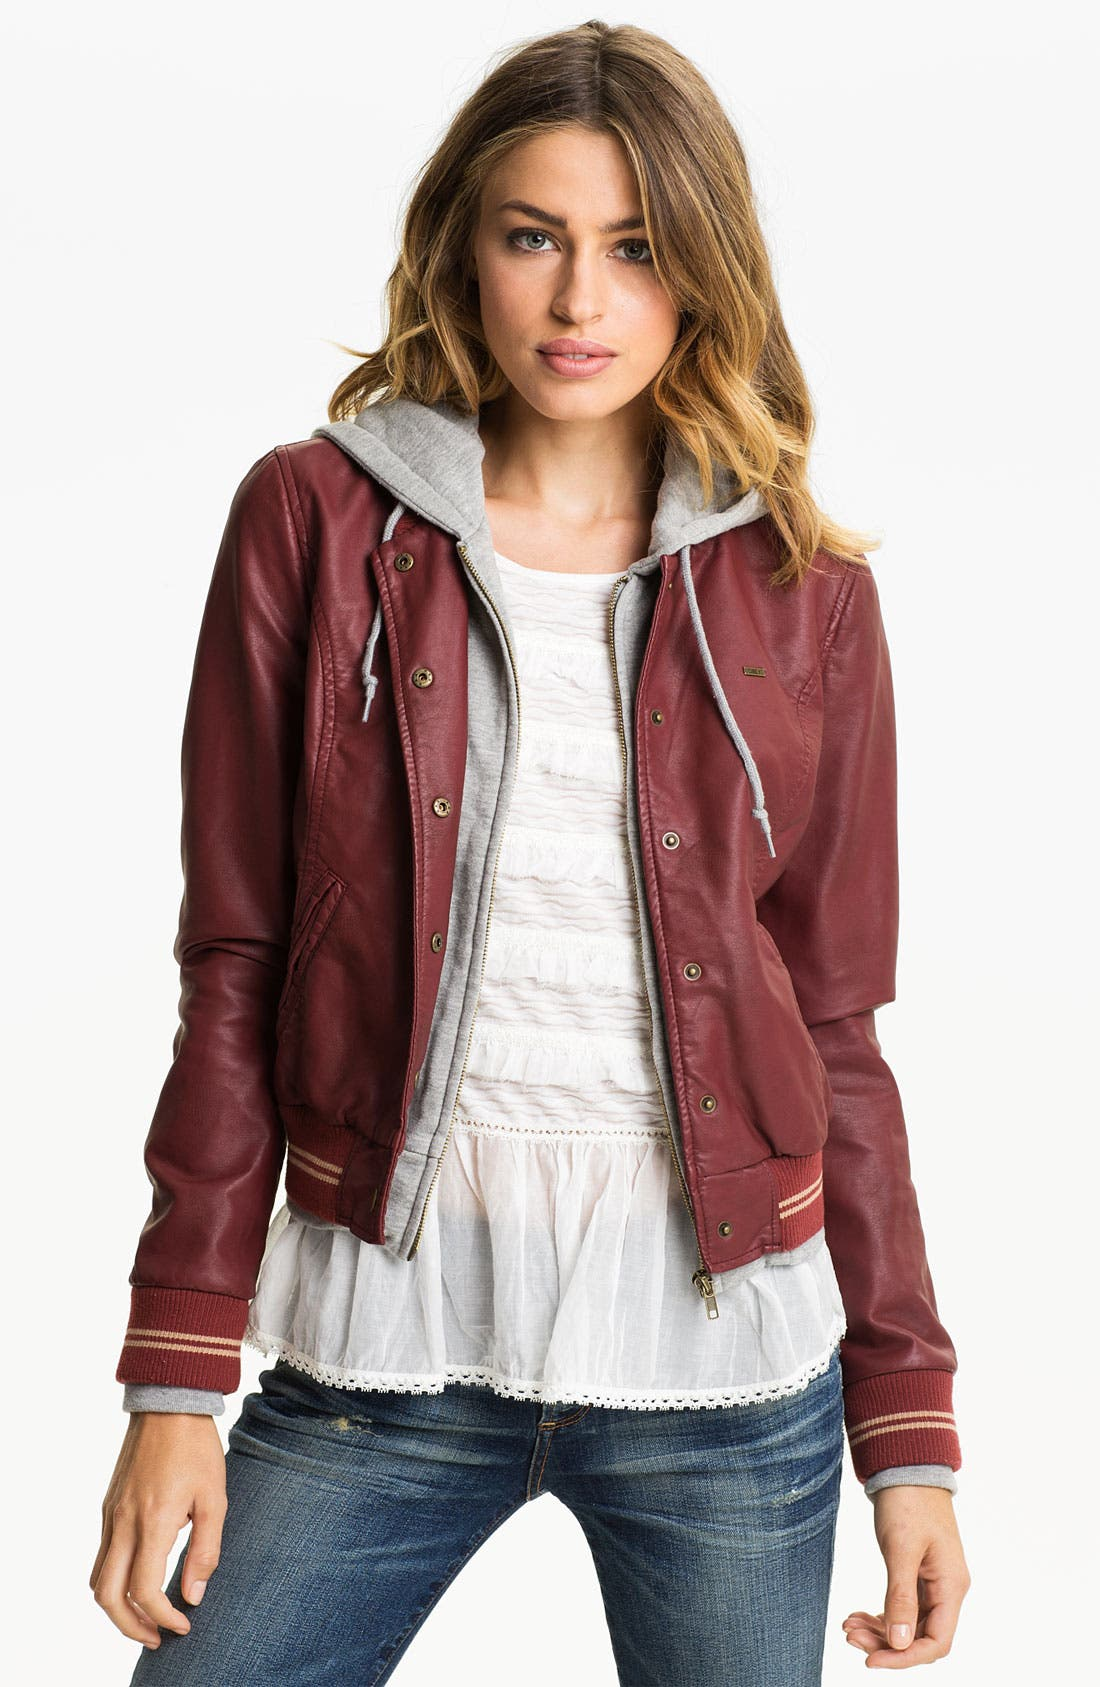 Alternate Image 1 Selected - Obey Layered Look Faux Leather Varsity Jacket